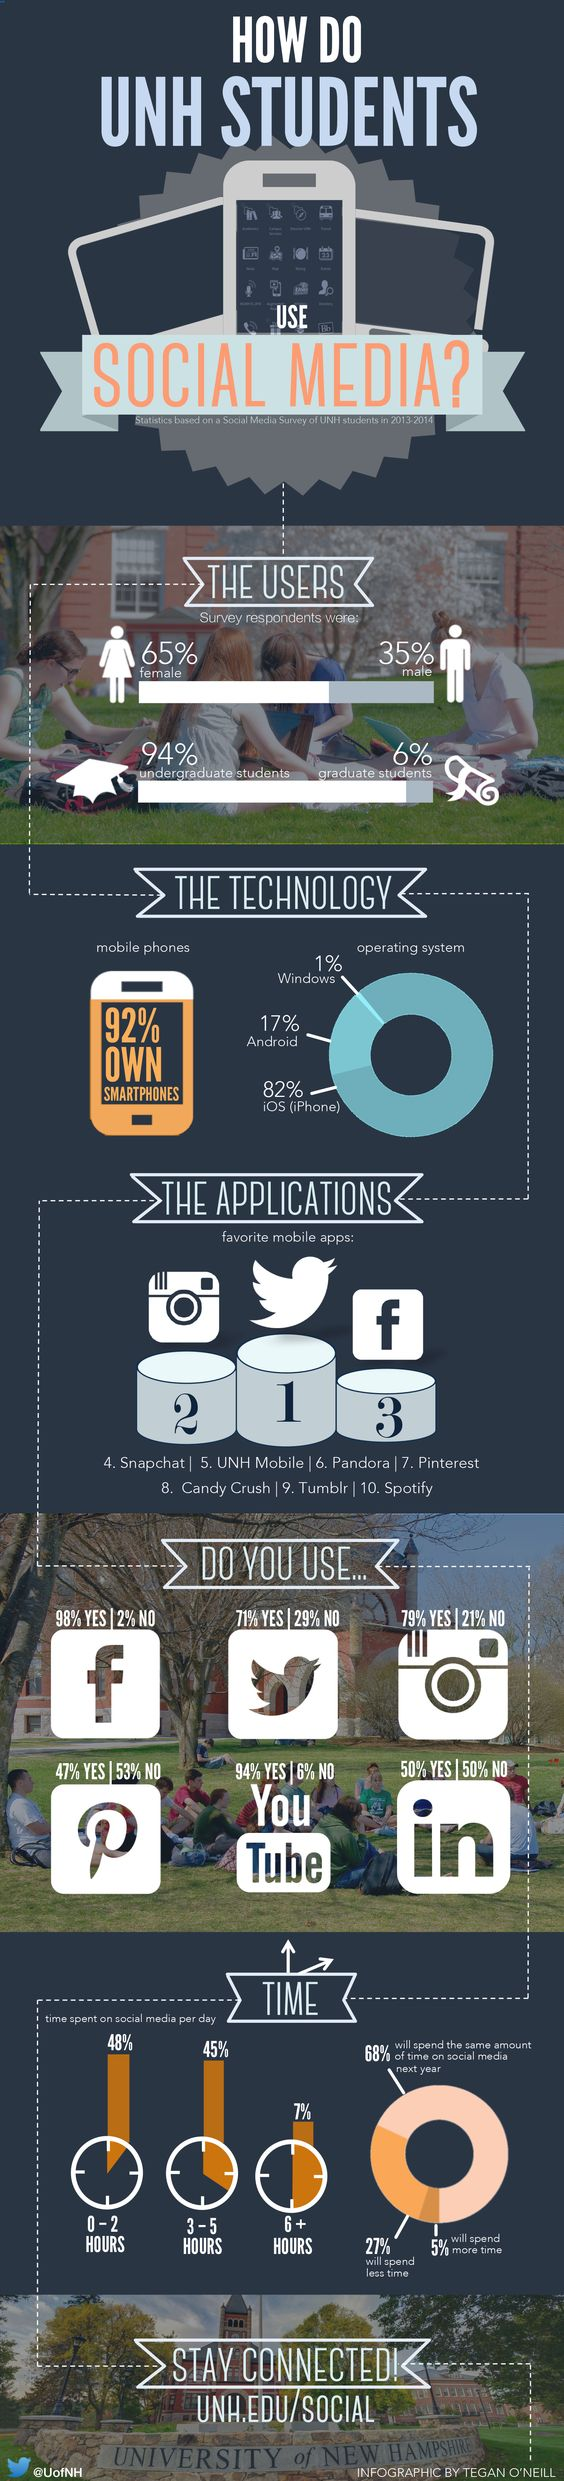 How do you UNH Students use social media in 2014?